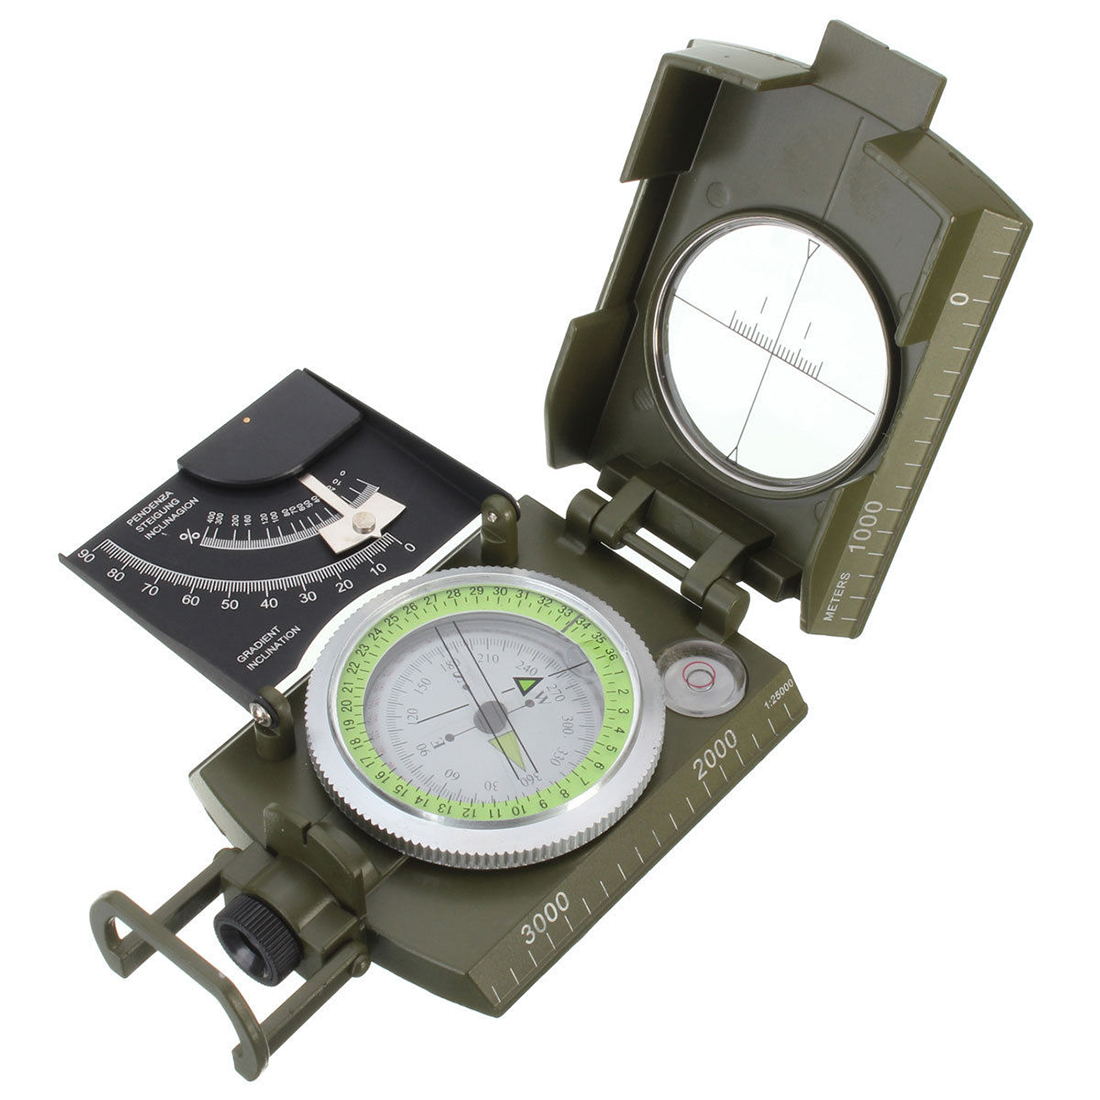 2019  New Professional Military Army Metal Sighting Compass Clinometer Camping